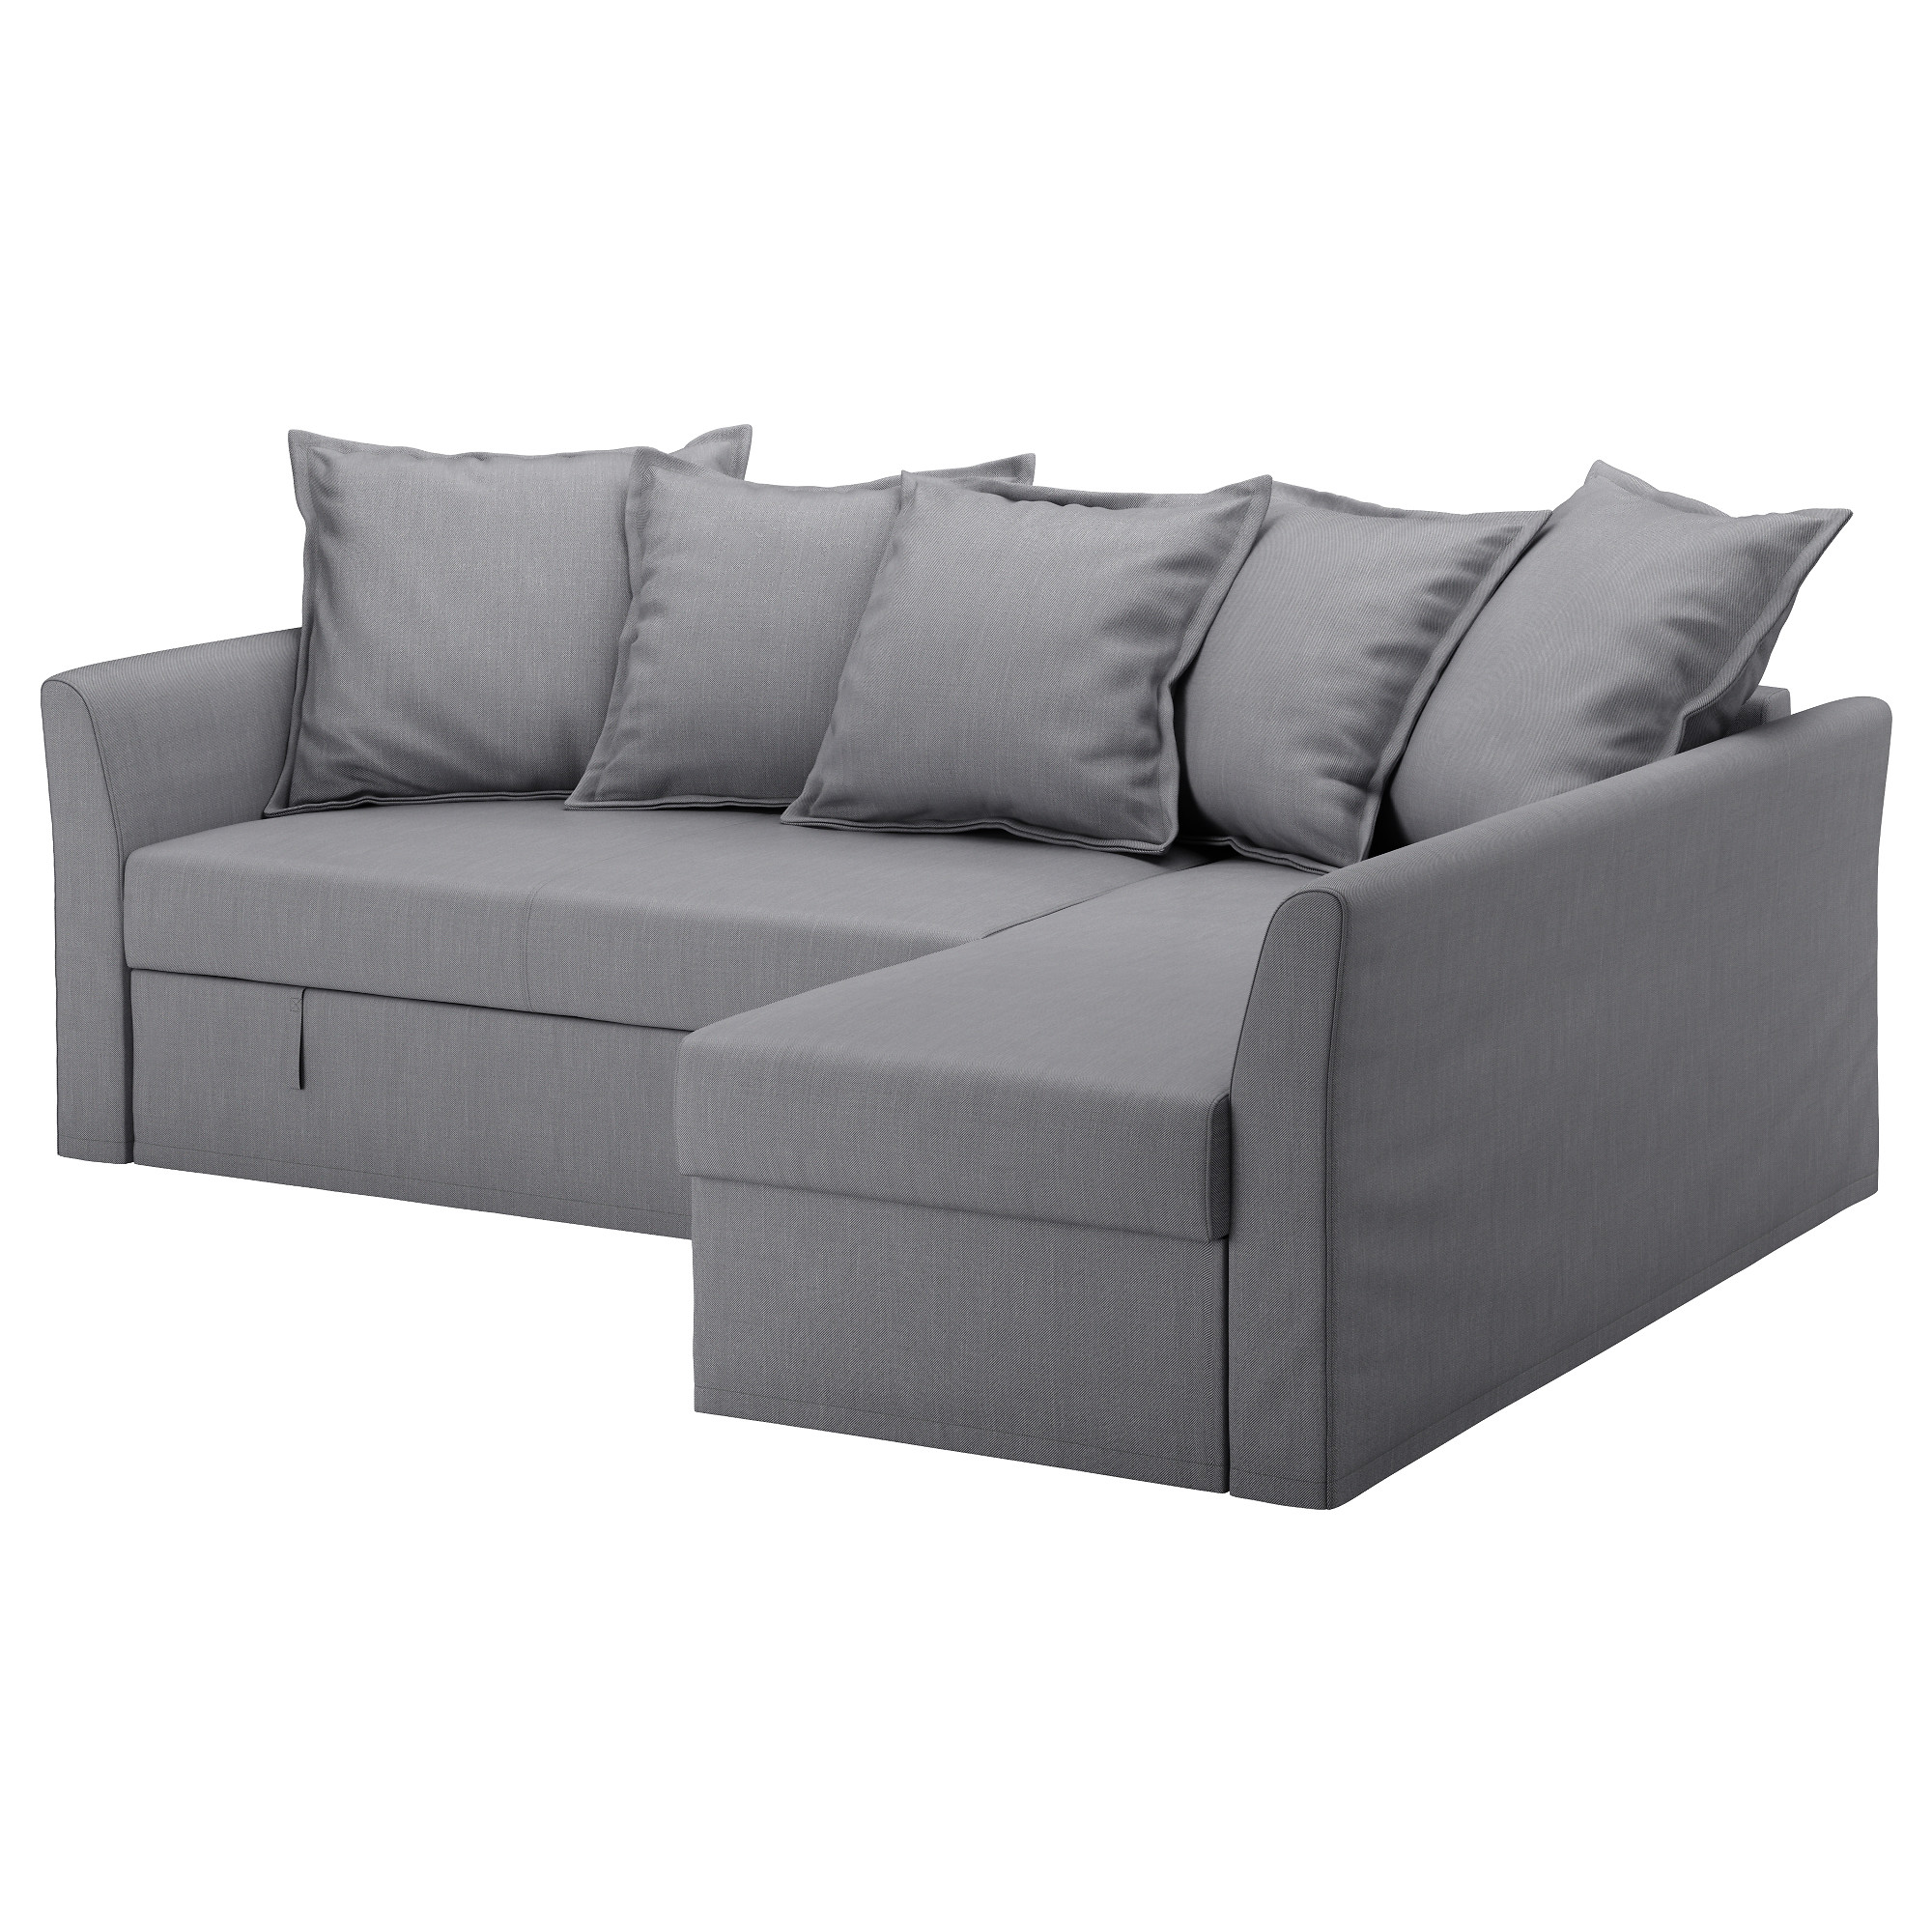 holmsund corner sofa bed nordvalla medium grey chaise longue storage and spaces. Black Bedroom Furniture Sets. Home Design Ideas